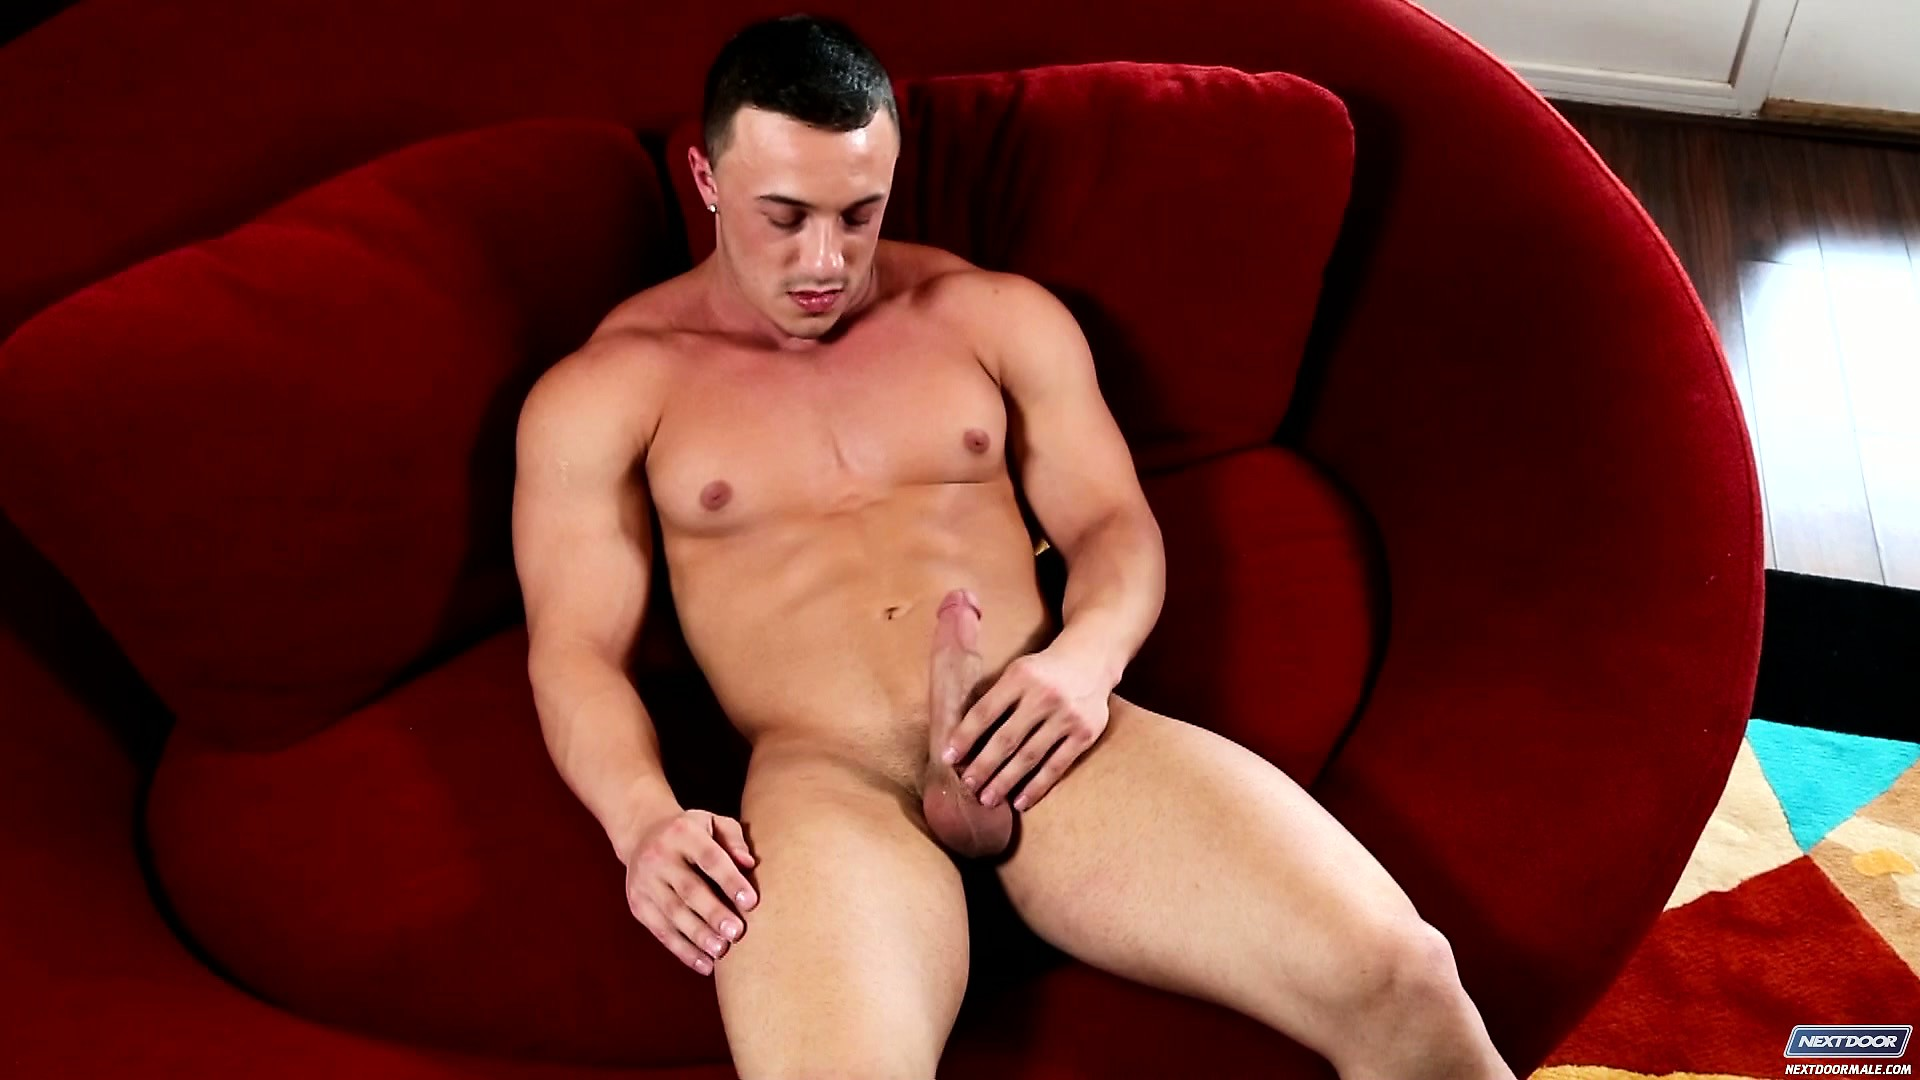 Porno Video of Marco Ratillo Gives A Sly Wink To The Camera Trying To Suggest Sexy Thoughts